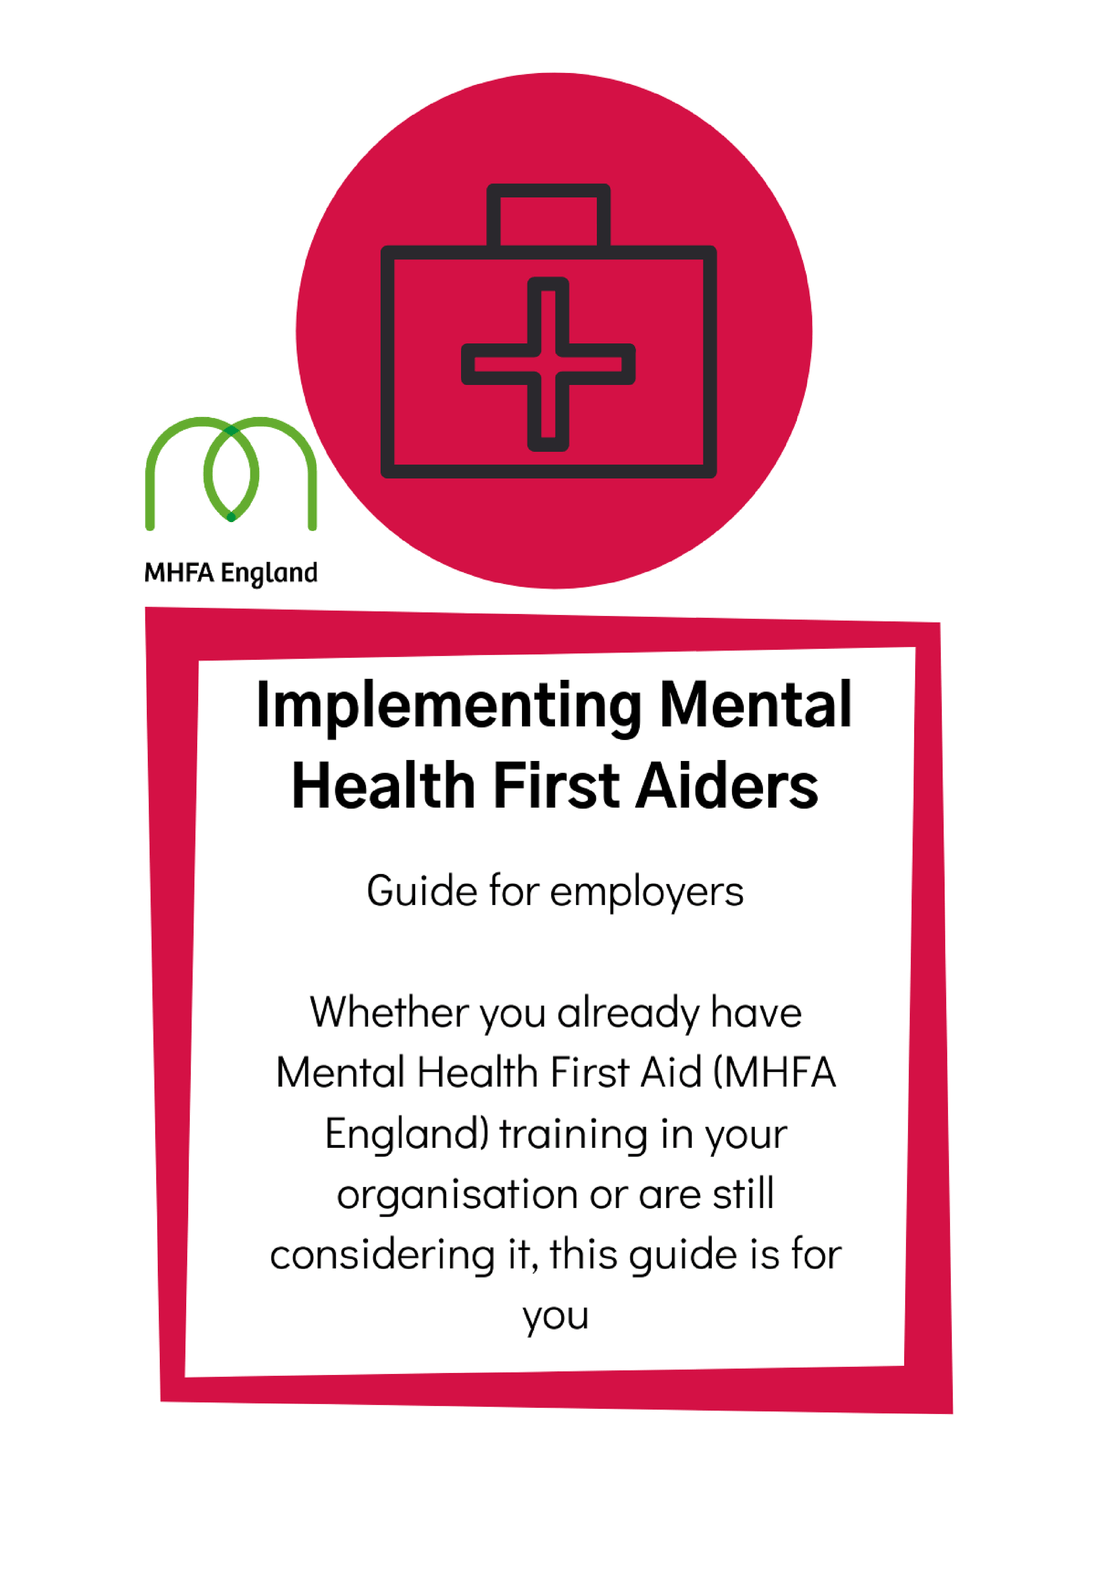 Implementing Mental Health First Aiders